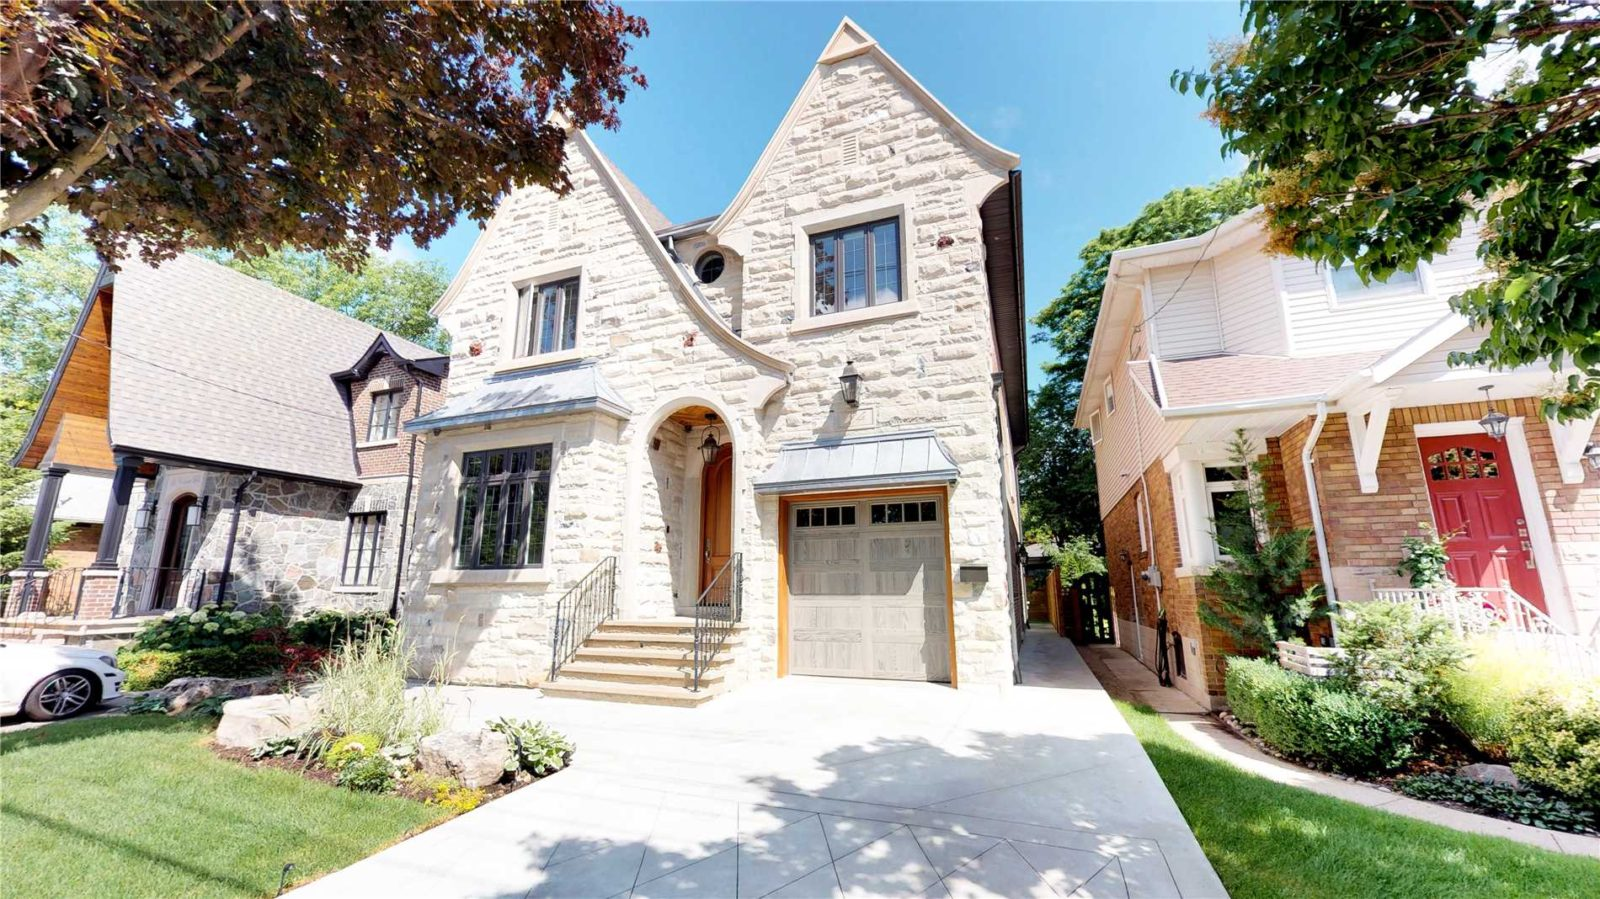 House of the Week: 24 Valiant Rd